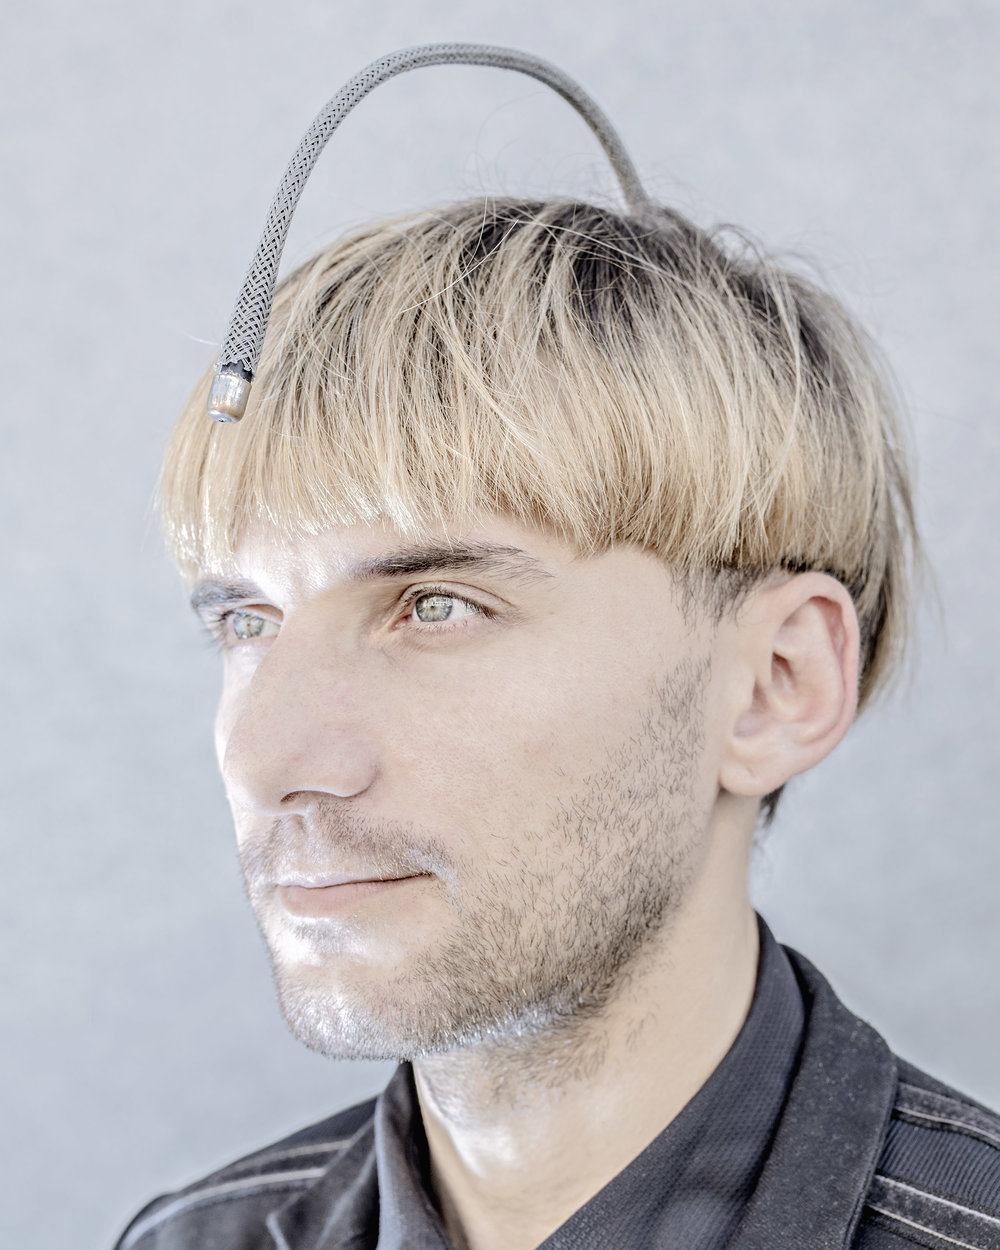 Neil Harbisson considers himself a cyborg. Afflicted with achromatopsy, a rare form of color blindness, he has had a prosthesis called Eyeborg implanted into his skull that converts colors into sound waves. Mr. Harbisson advocates creative enhancement of the human and sometimes distances himself from transhumanism, which, he thinks, is stuck in stereotyped or commercial depictions. His view is more that of an artist than a disciple of technoscience. He takes pride in being the first human to appear with a prosthesis in a passport photo.  Munich, July 15, 2015